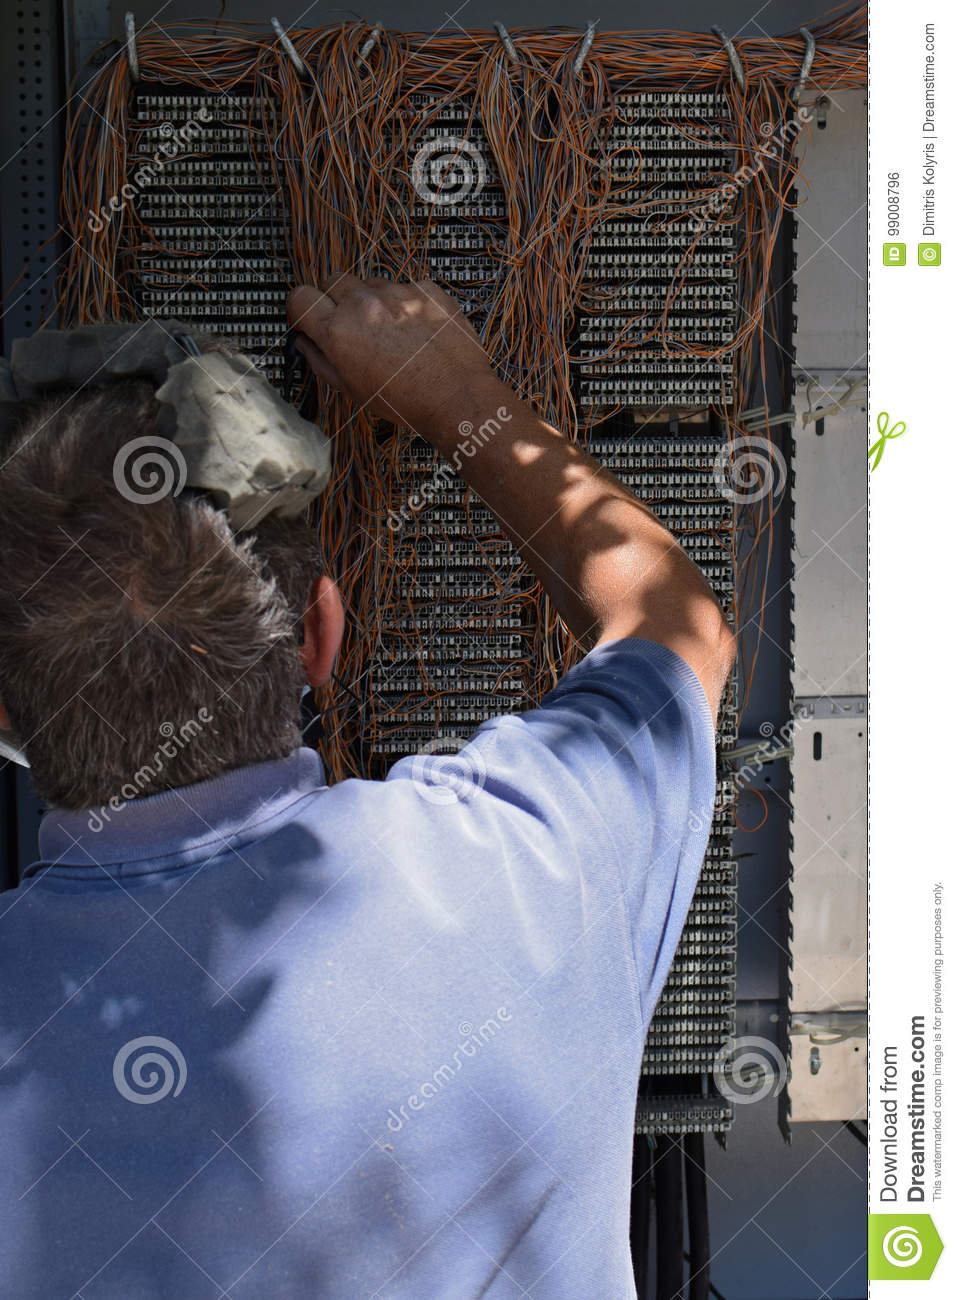 Engineer Telephone Wiring Box Editorial Photo Image Of Switchboard Phone Junction Athens Greece August 1 2017 Working On